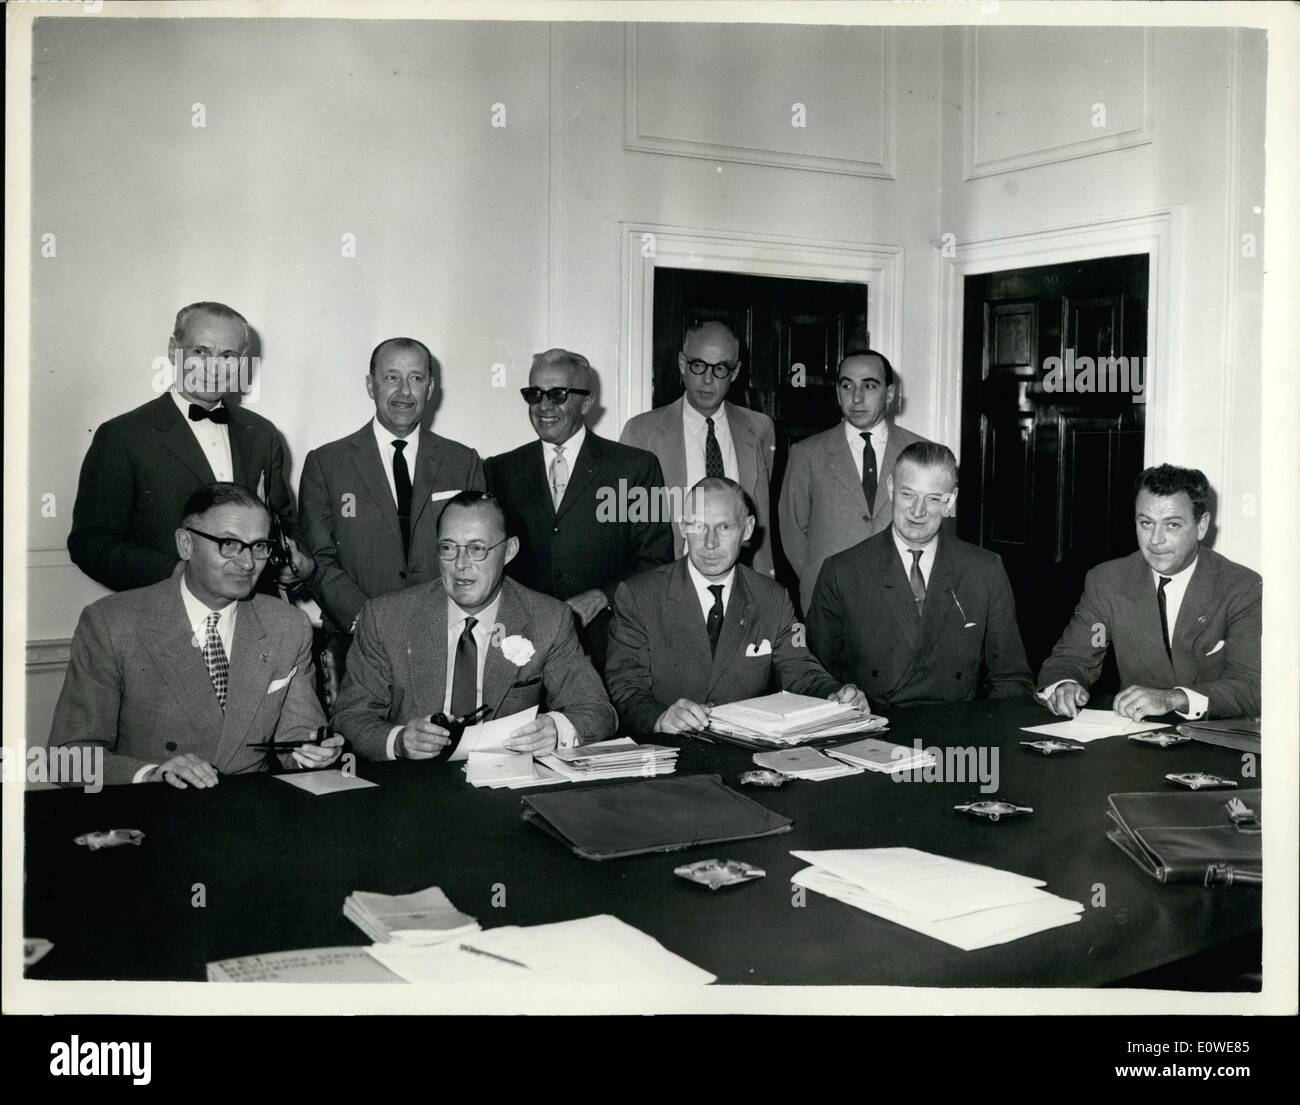 Jul. 07, 1962 - The Annual Meeting Of the International Equestrian Federation: For the first time since it was founded in 1921 the Executive Committee of the Federation Equestre Internationale (International Equestrian Federation-F.E.I.) met at the offices of the British Horse Society, Bedford Square, London, today. Prince Bernhard of the Netherlands took the chair. Photo shows. At the meeting today are (L to R Front Row) M.E.A. Sarasin, 2nd Vice-president (Switzerland) HR.H. Prince Bernhard, of the Netherlands (Chairman), Chevalier H. de Menten de Horne, Sec-General (Belgium), Colonel M.P - Stock Image